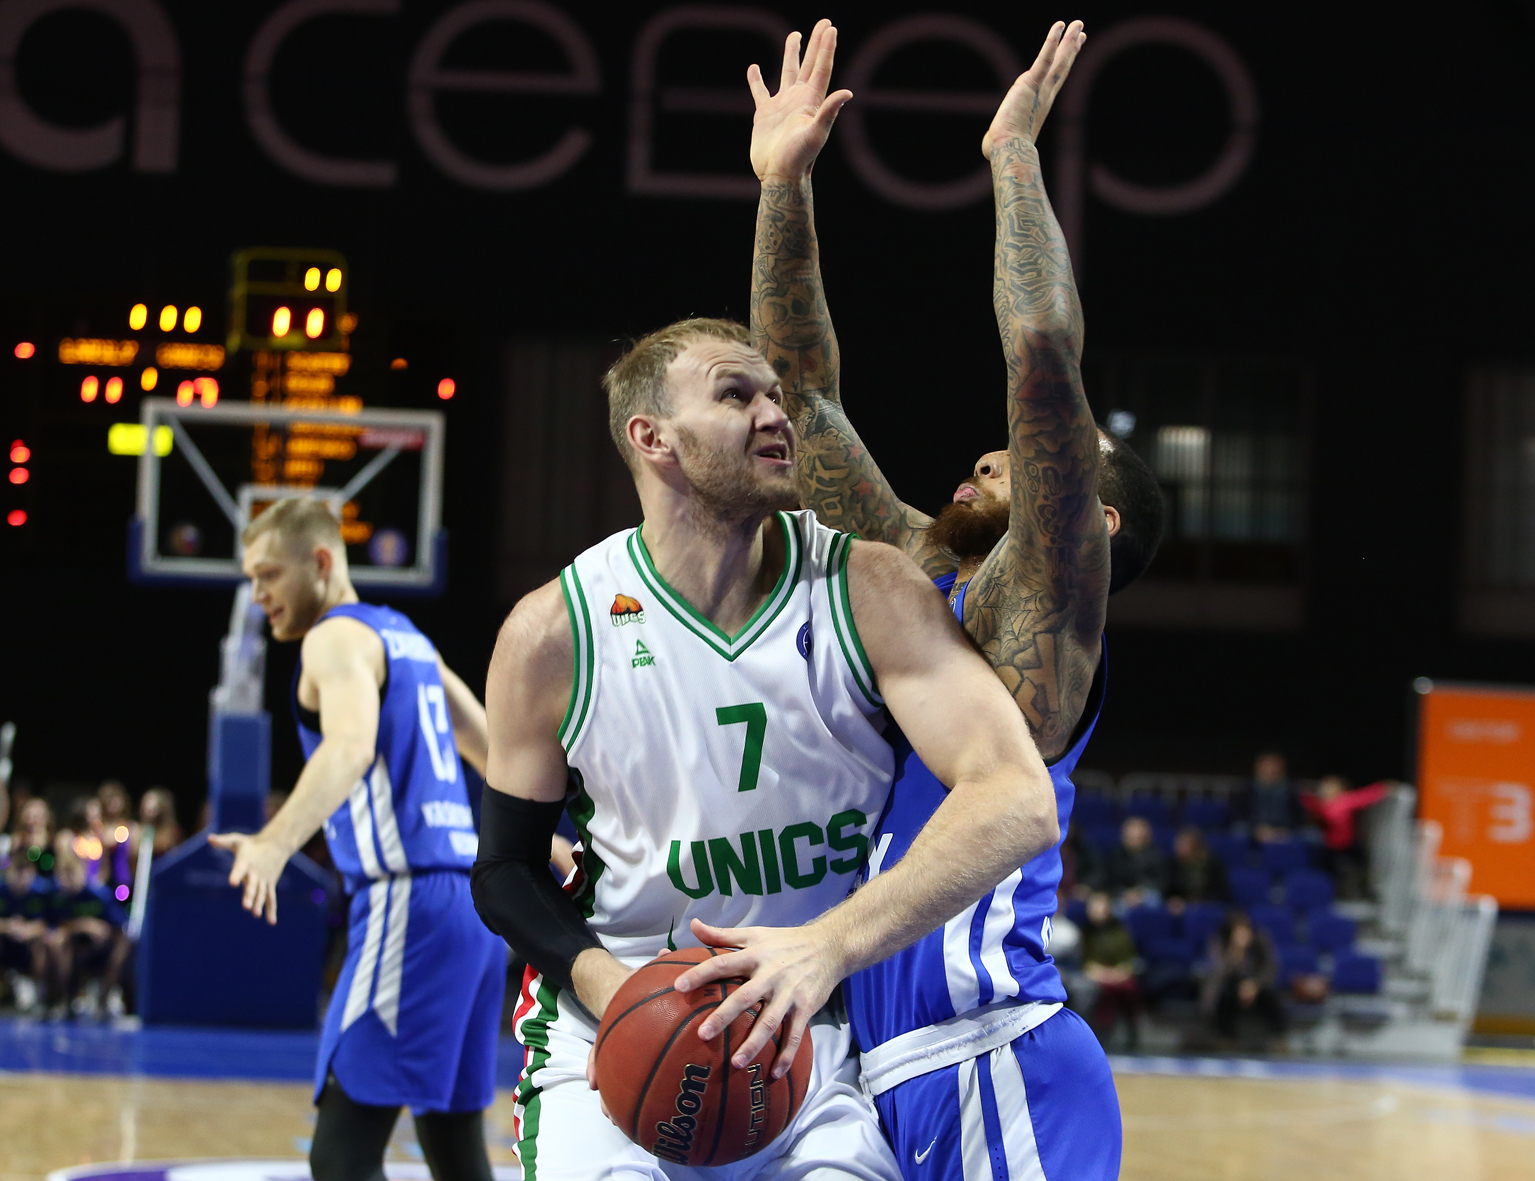 UNICS Takes Care Of Business In Krasnoyarsk